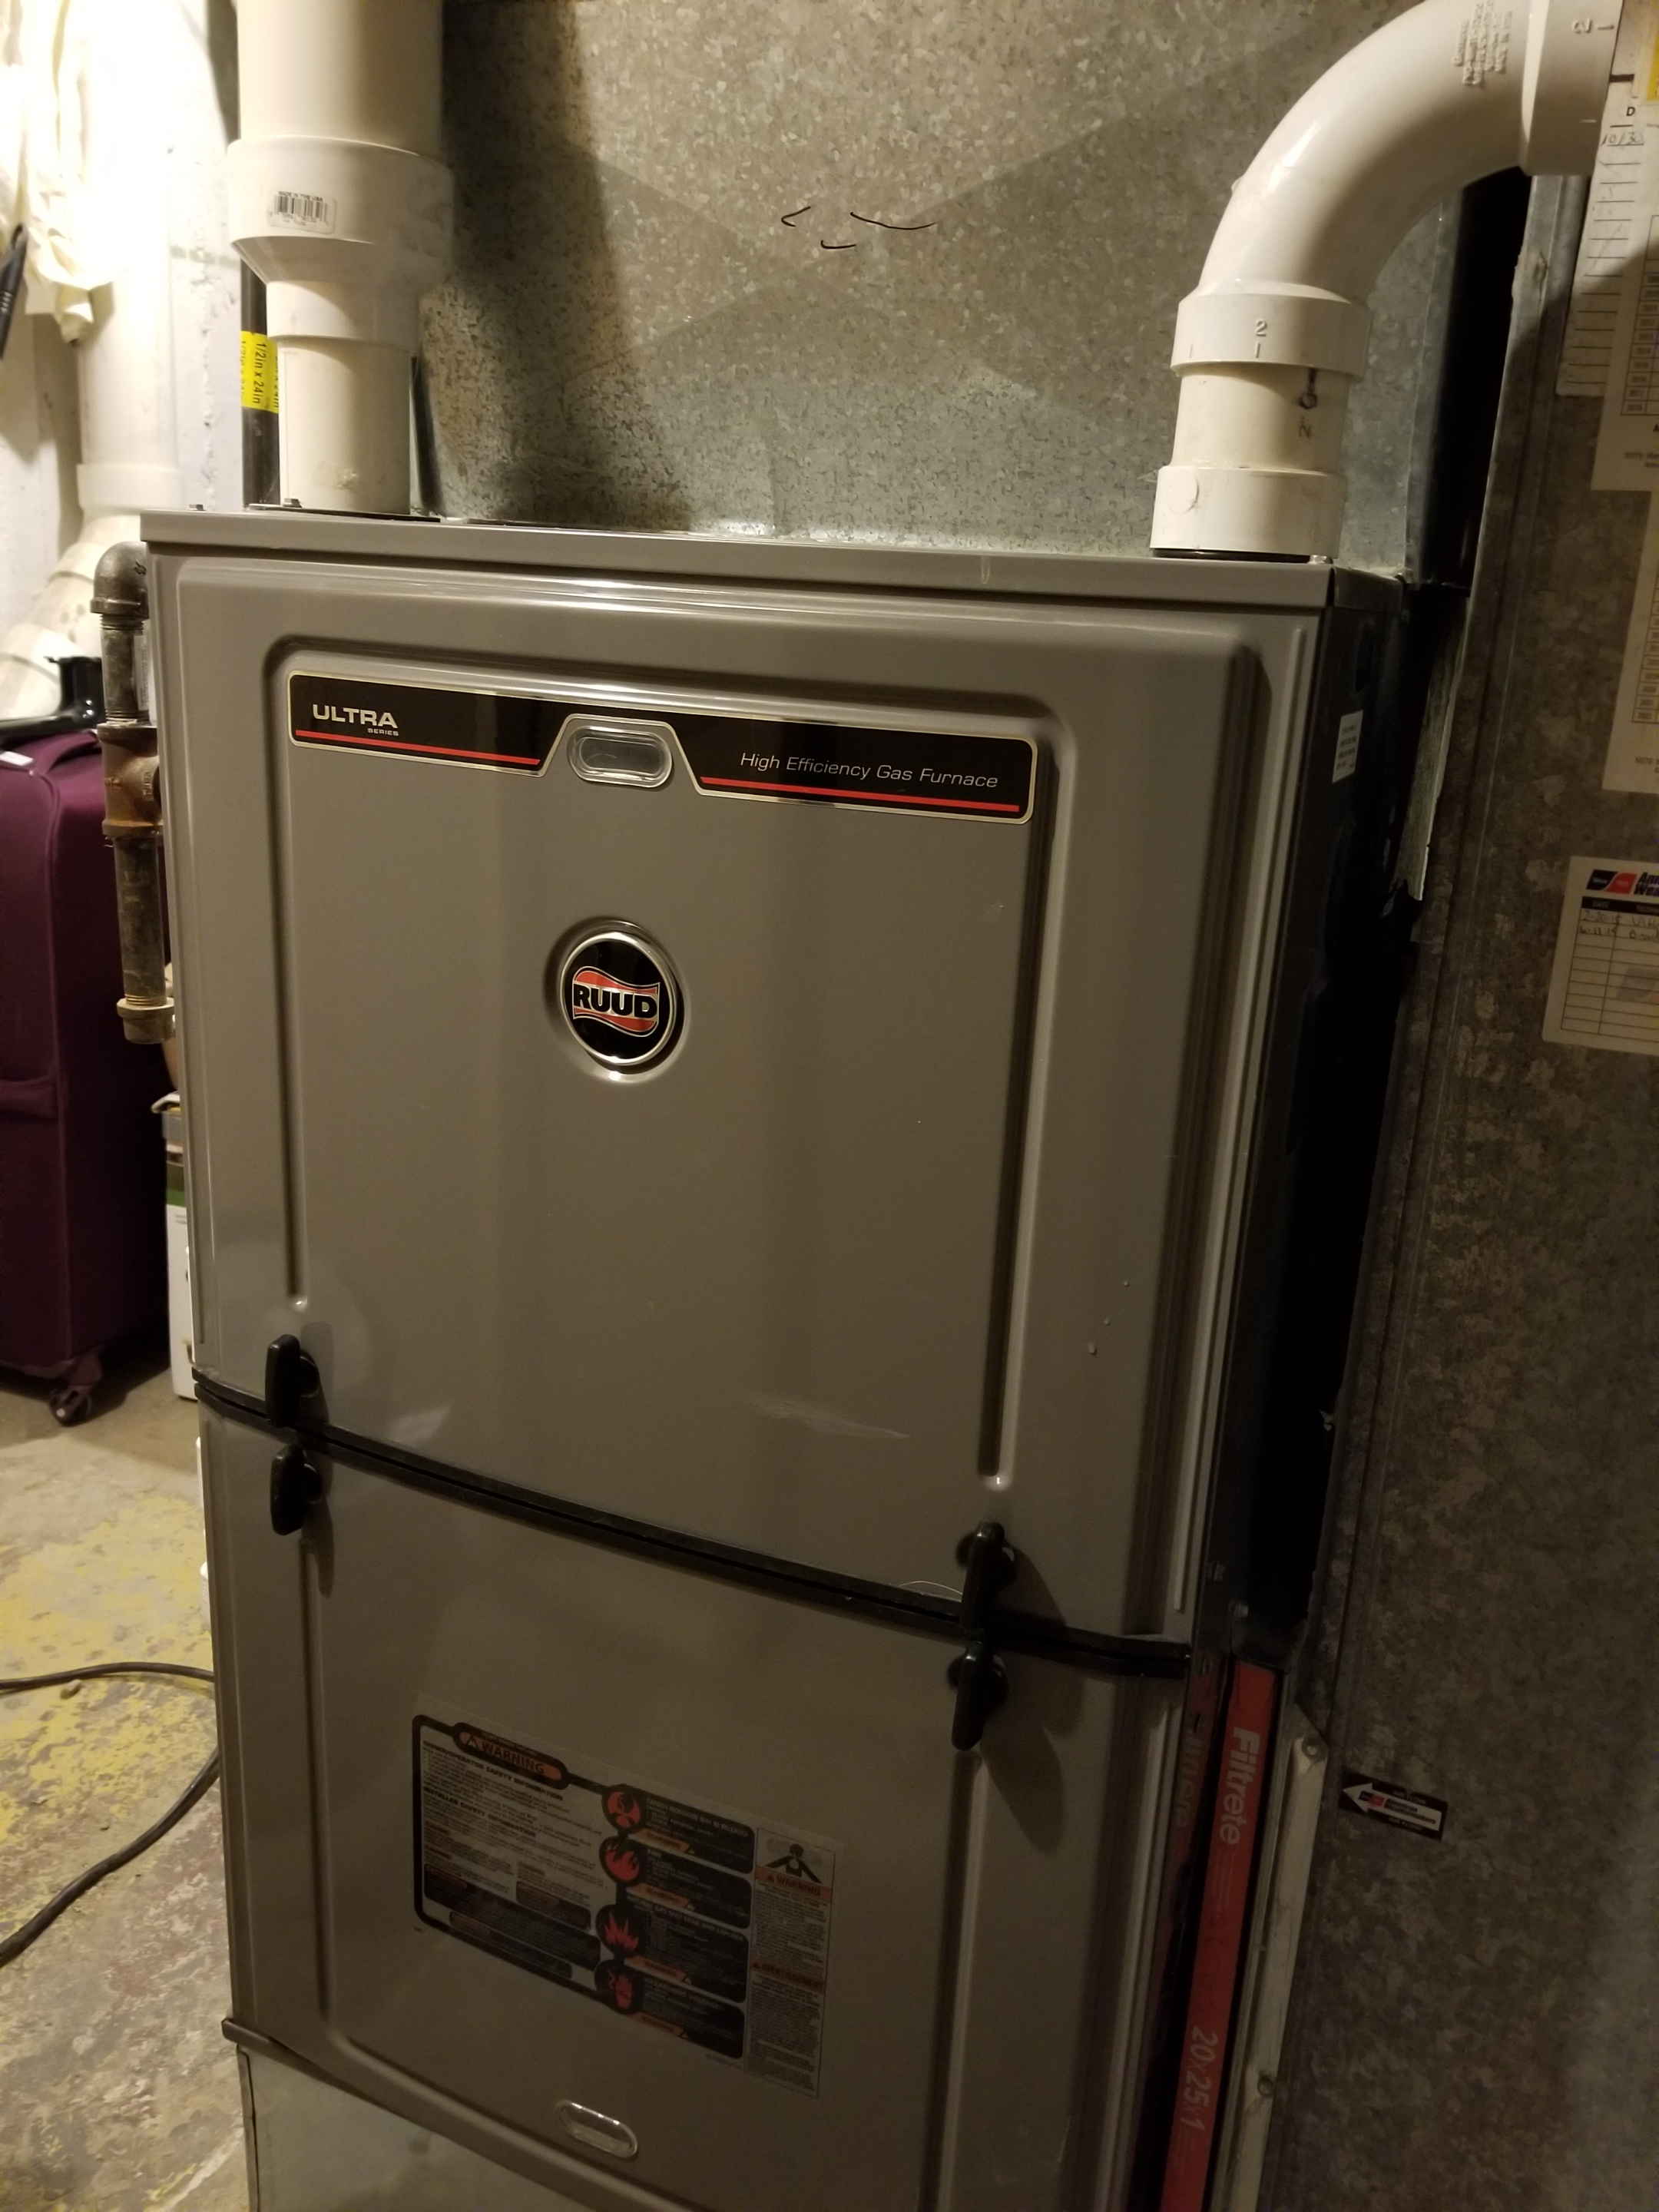 Performed annual maintenance on the Ruud furnace, General Air humidifier and made adjustments to improve the overall efficiency and life expectancy of the equipment.